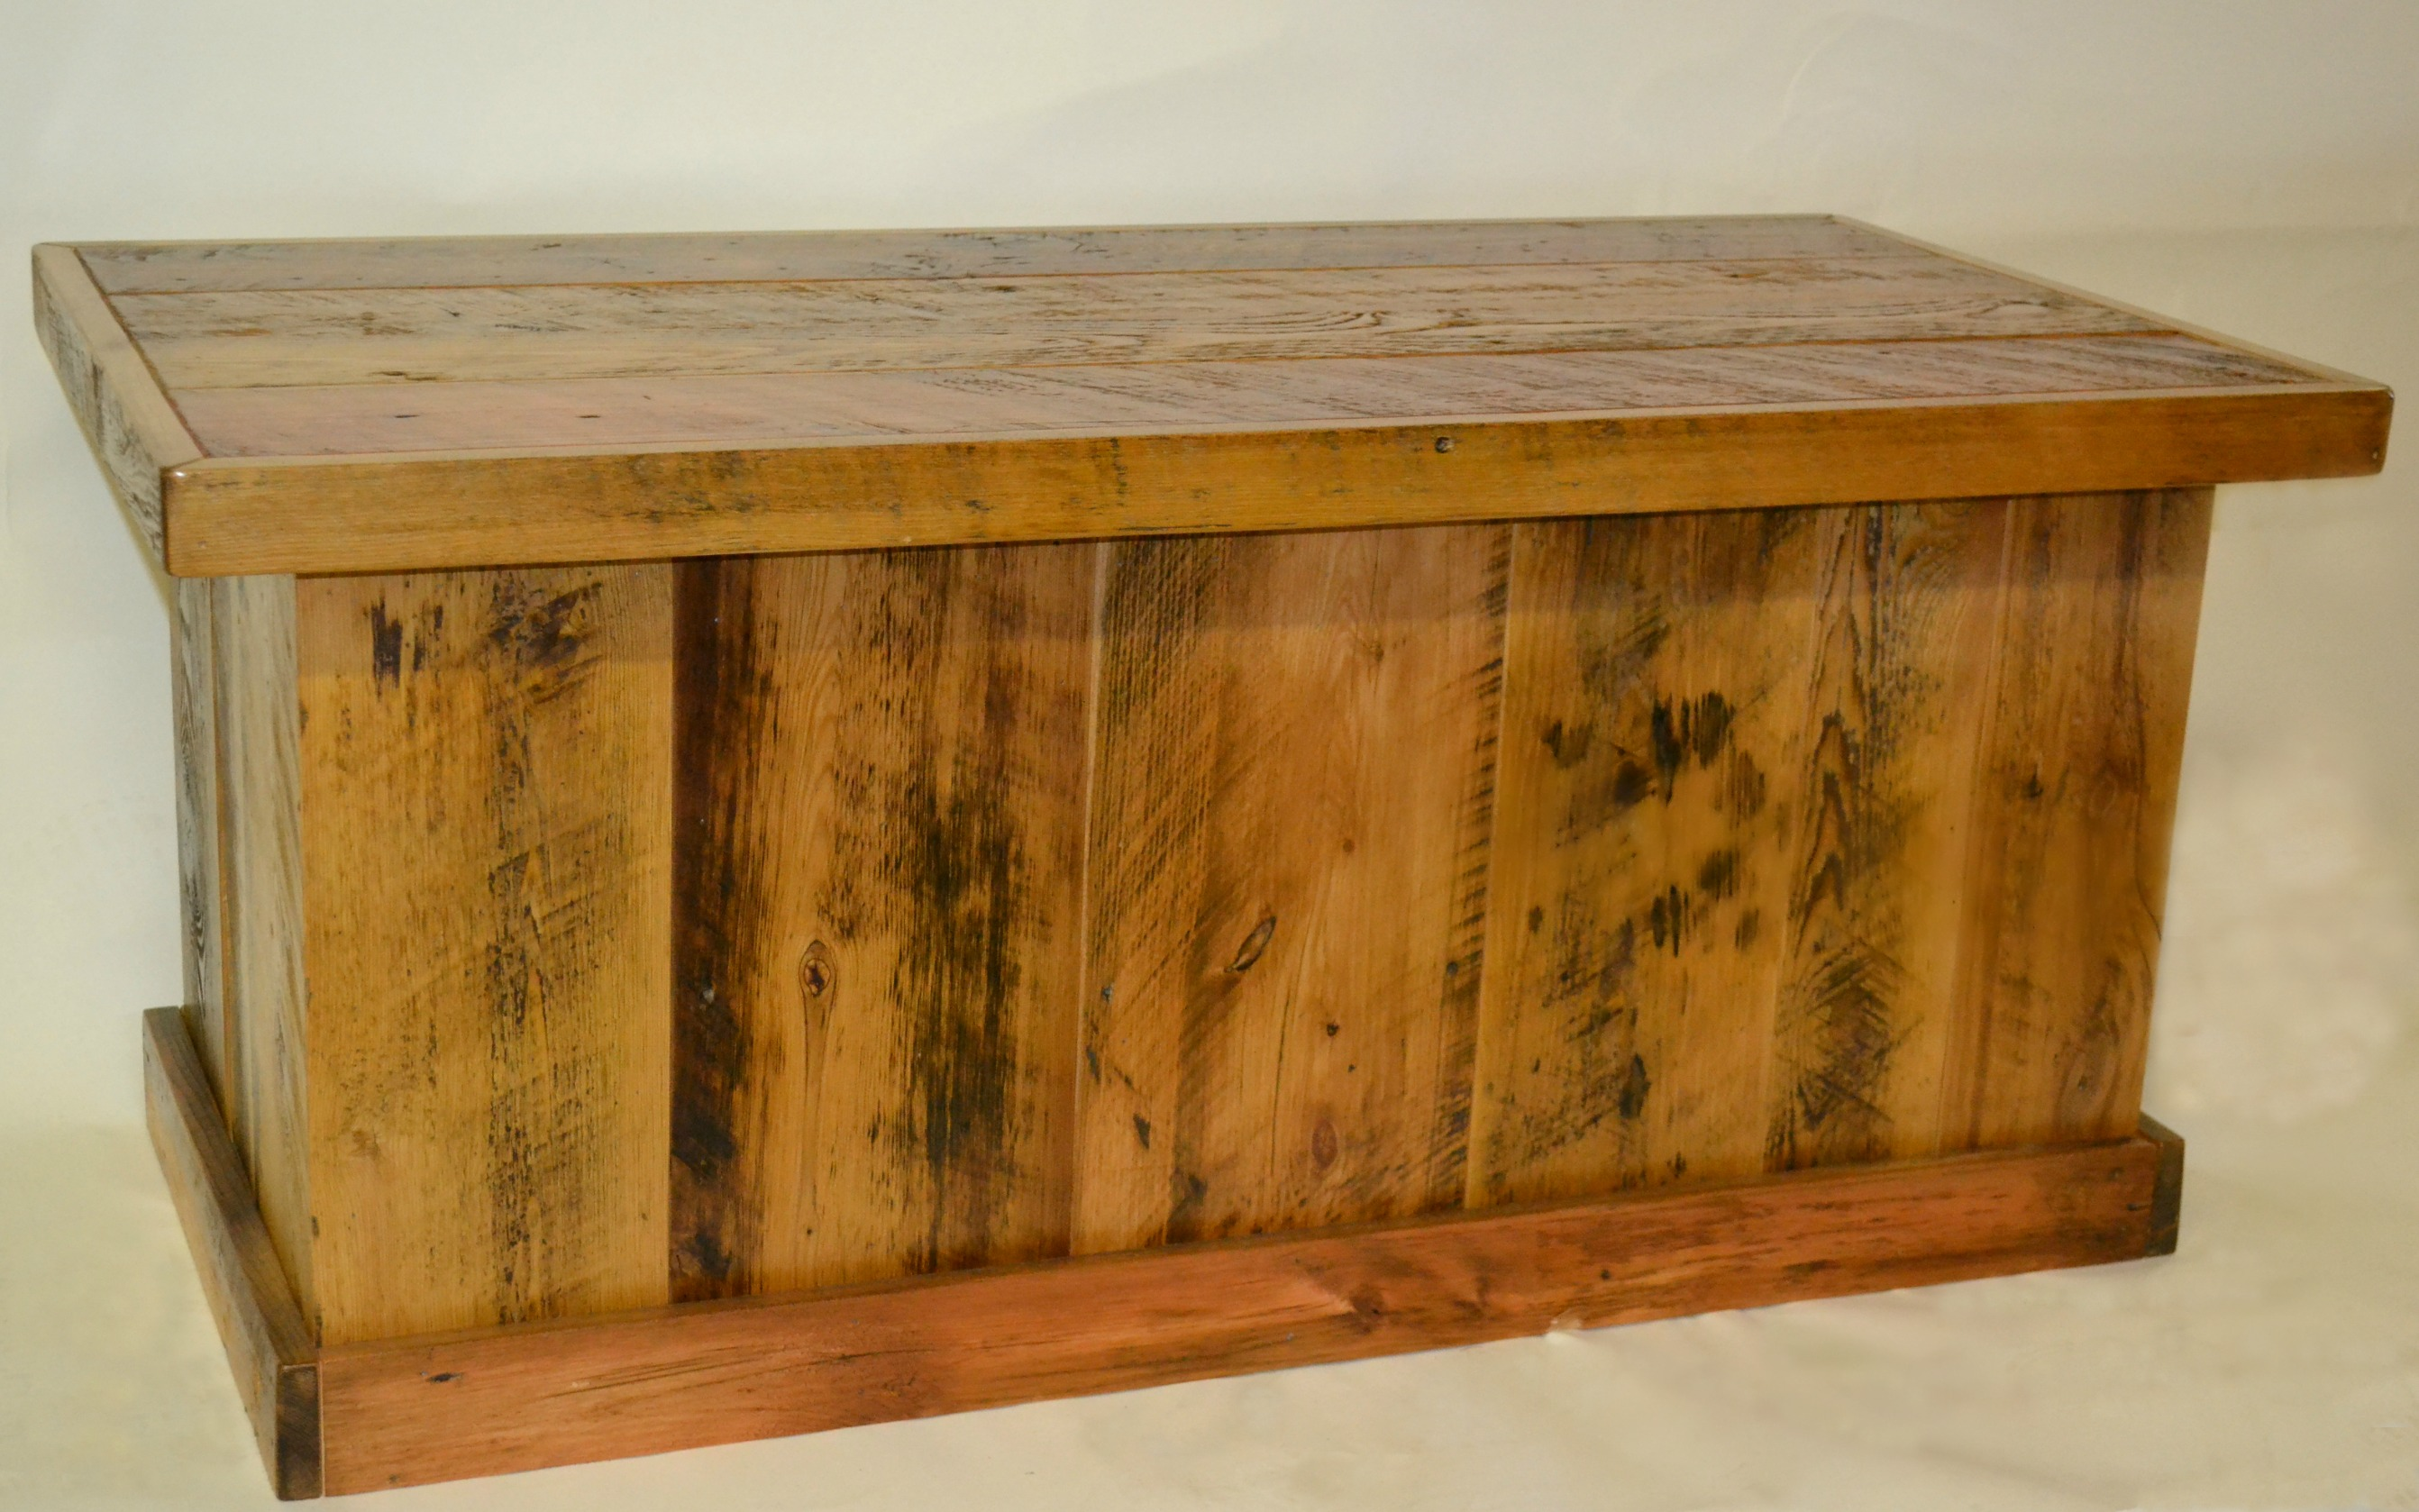 Phantasy Barnwood Table Barnwood Table Rustic Furniture Mall By Chest Coffee Table Lift Chest Coffee Tables Sale houzz-03 Chest Coffee Table